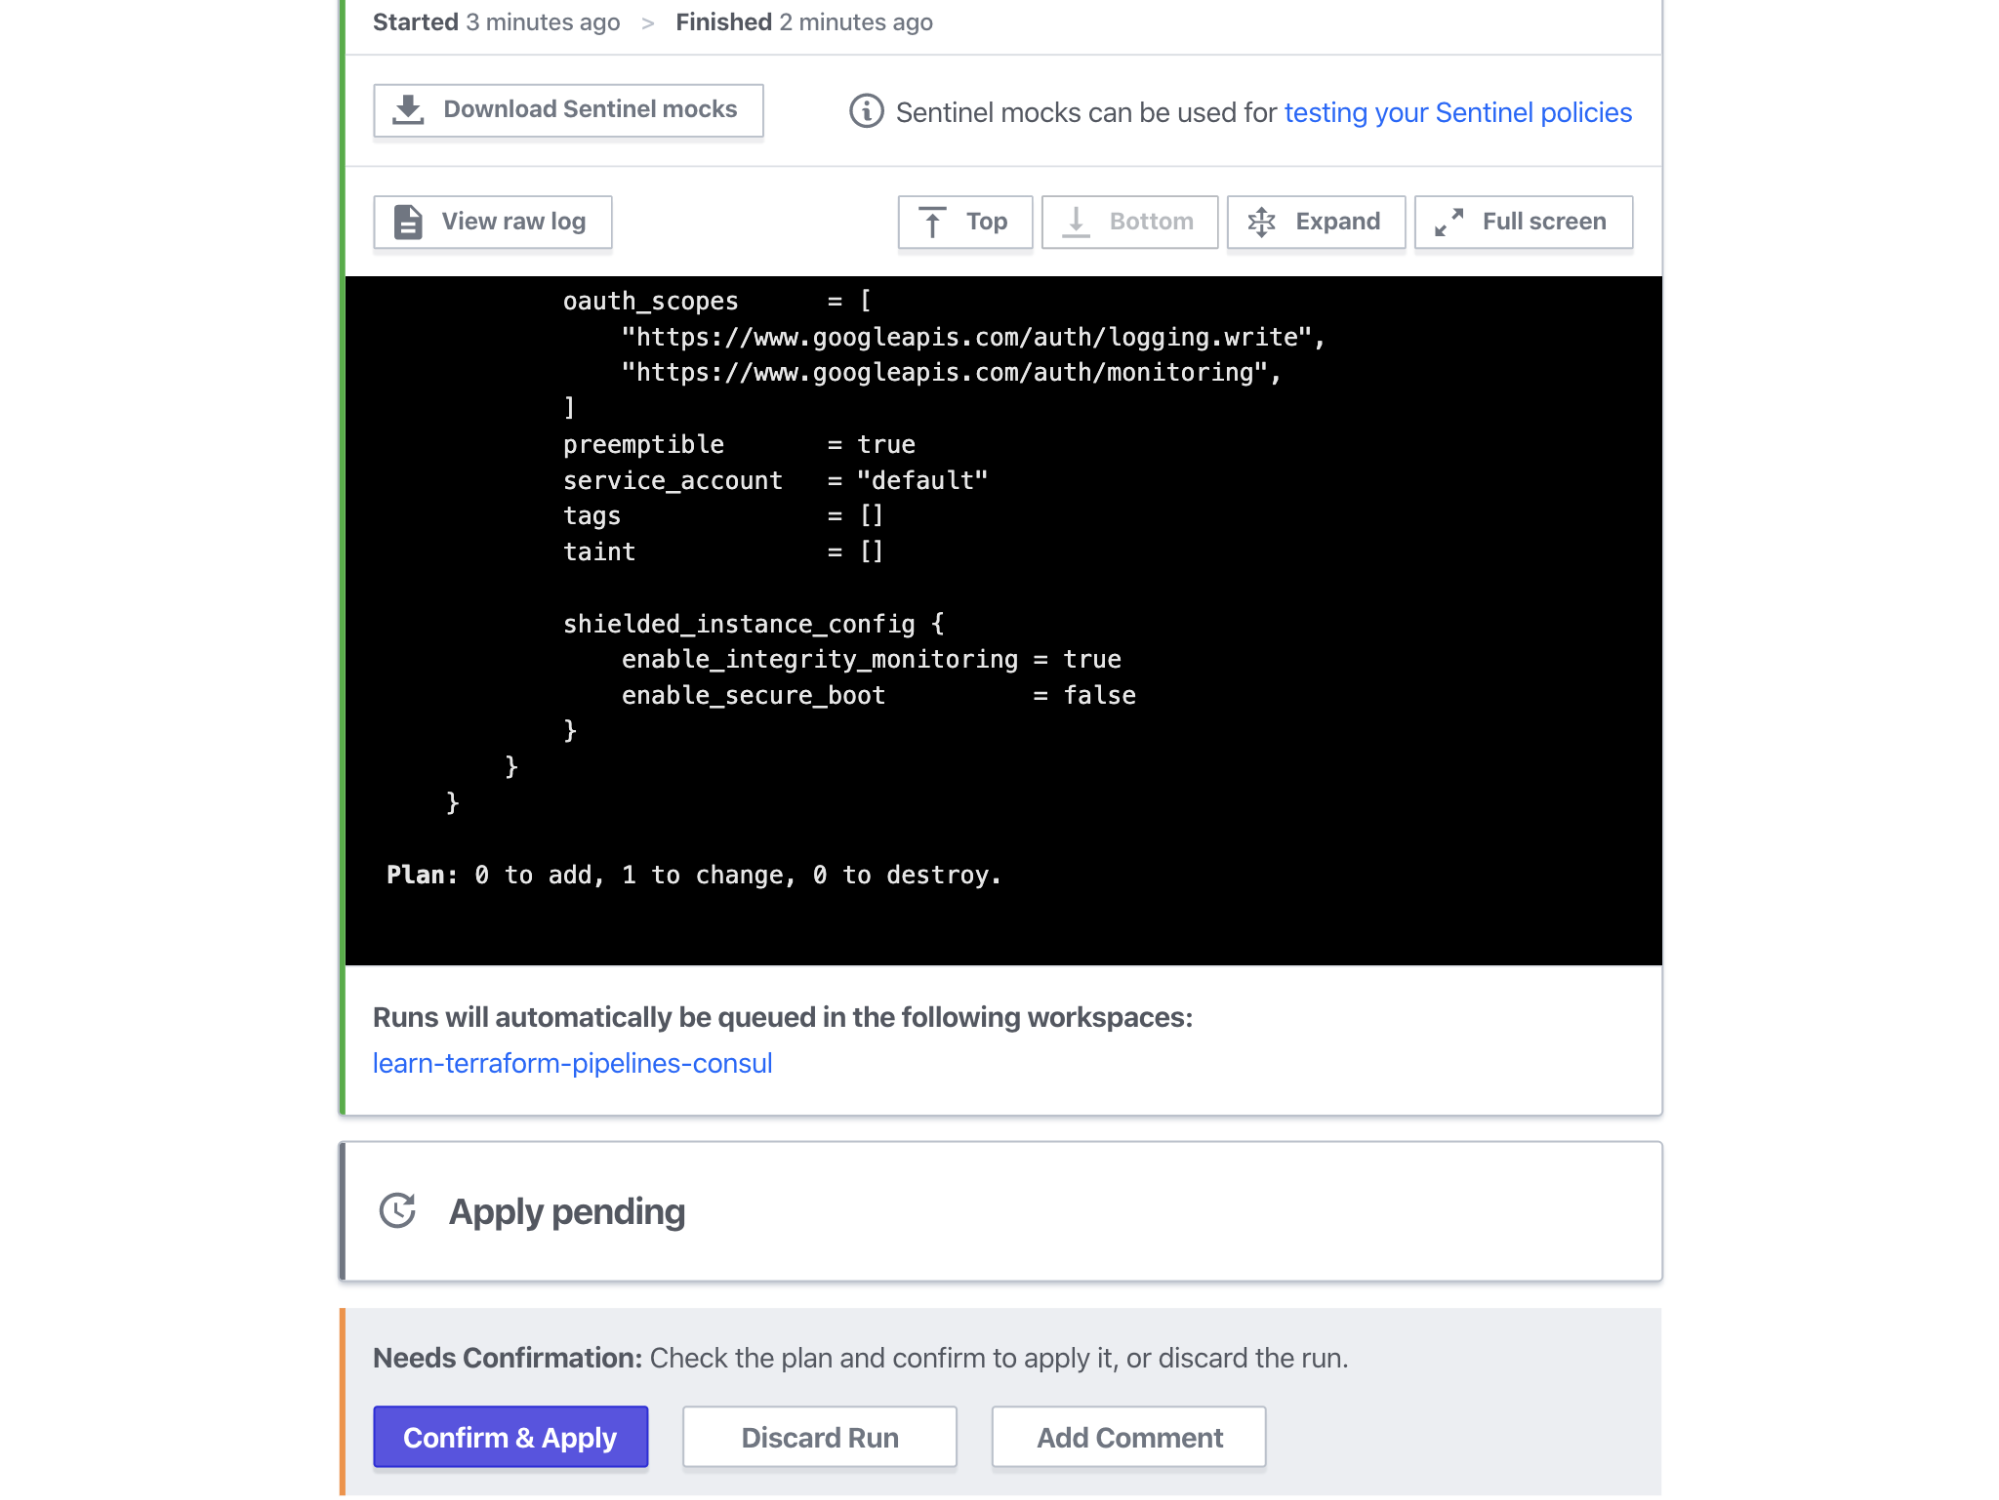 Terraform Cloud Kubernetes Workspace queued run with enable_consul_and_vault set to true. `learn-terraform-pipelines-consul` workspace will be listed under the run plan as a run trigger.